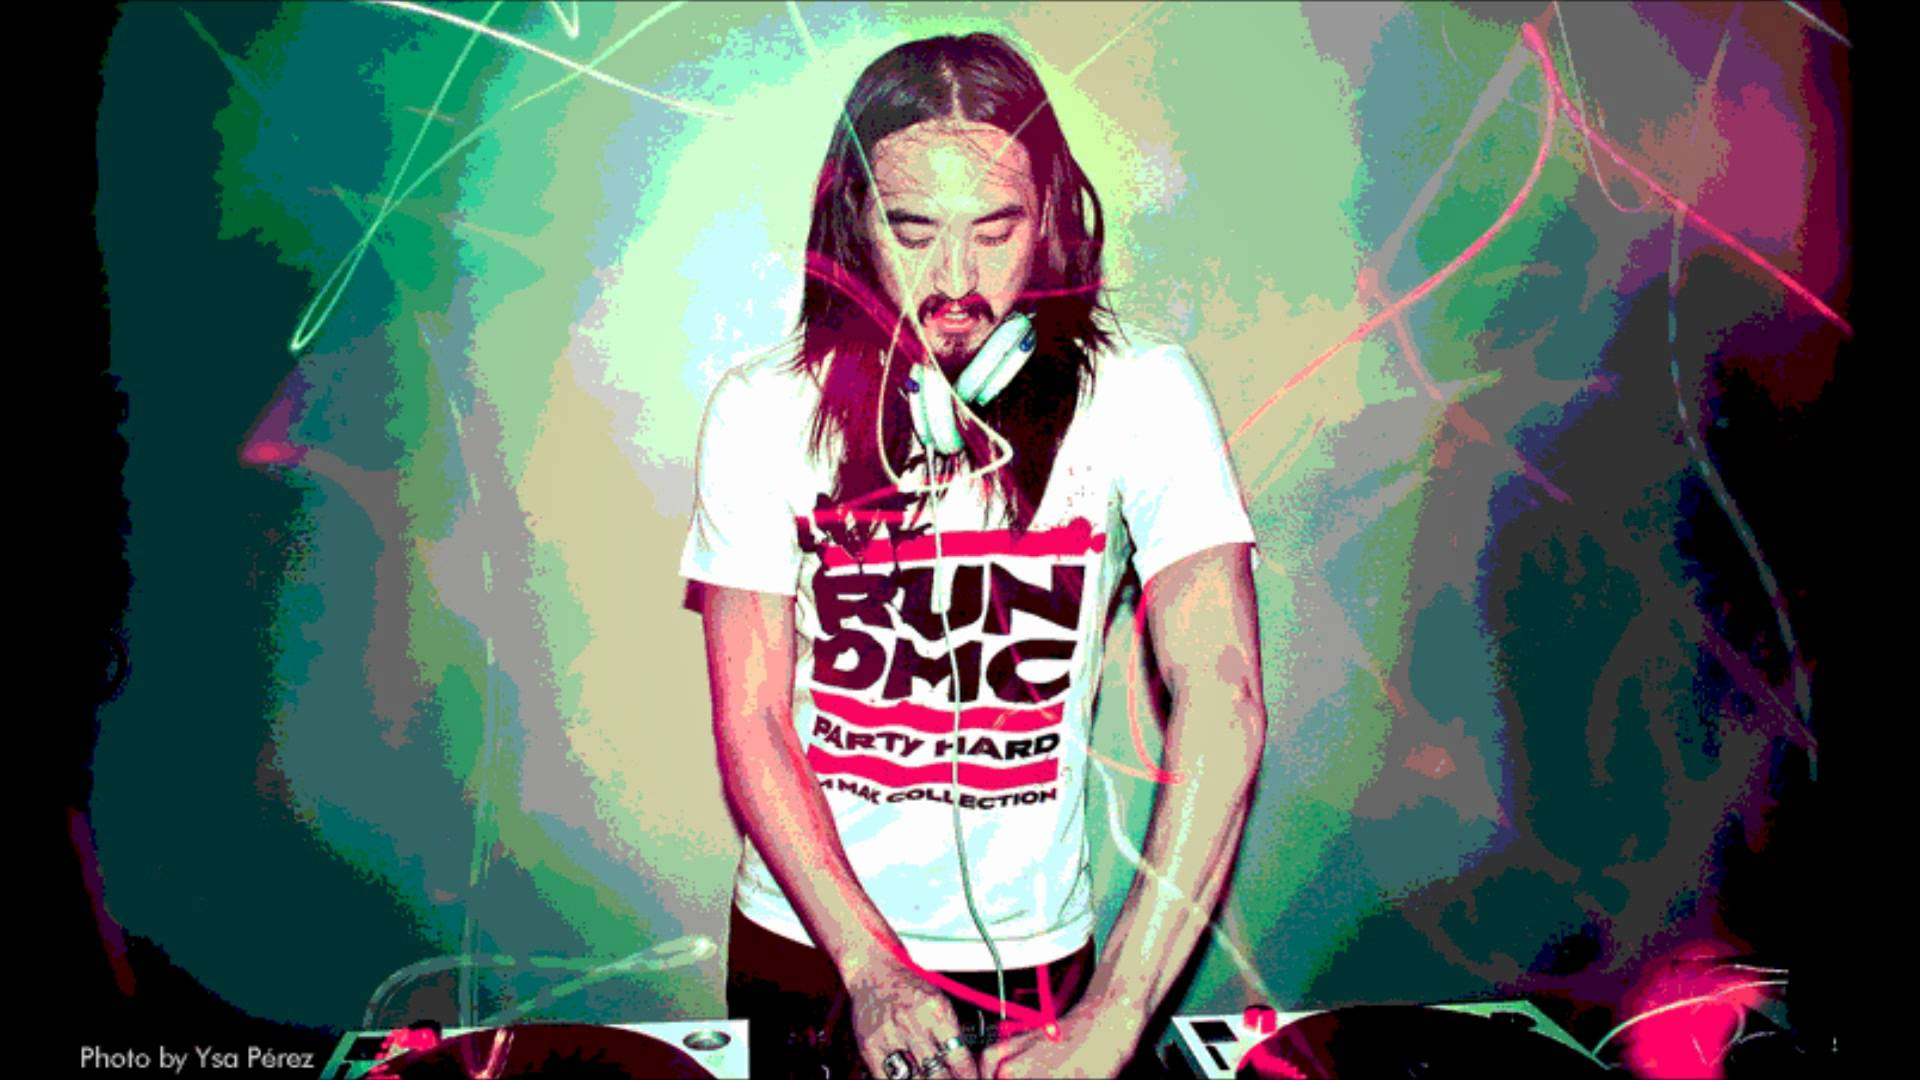 Steve Aoki - Turbulence (Tomorrowland Remix)